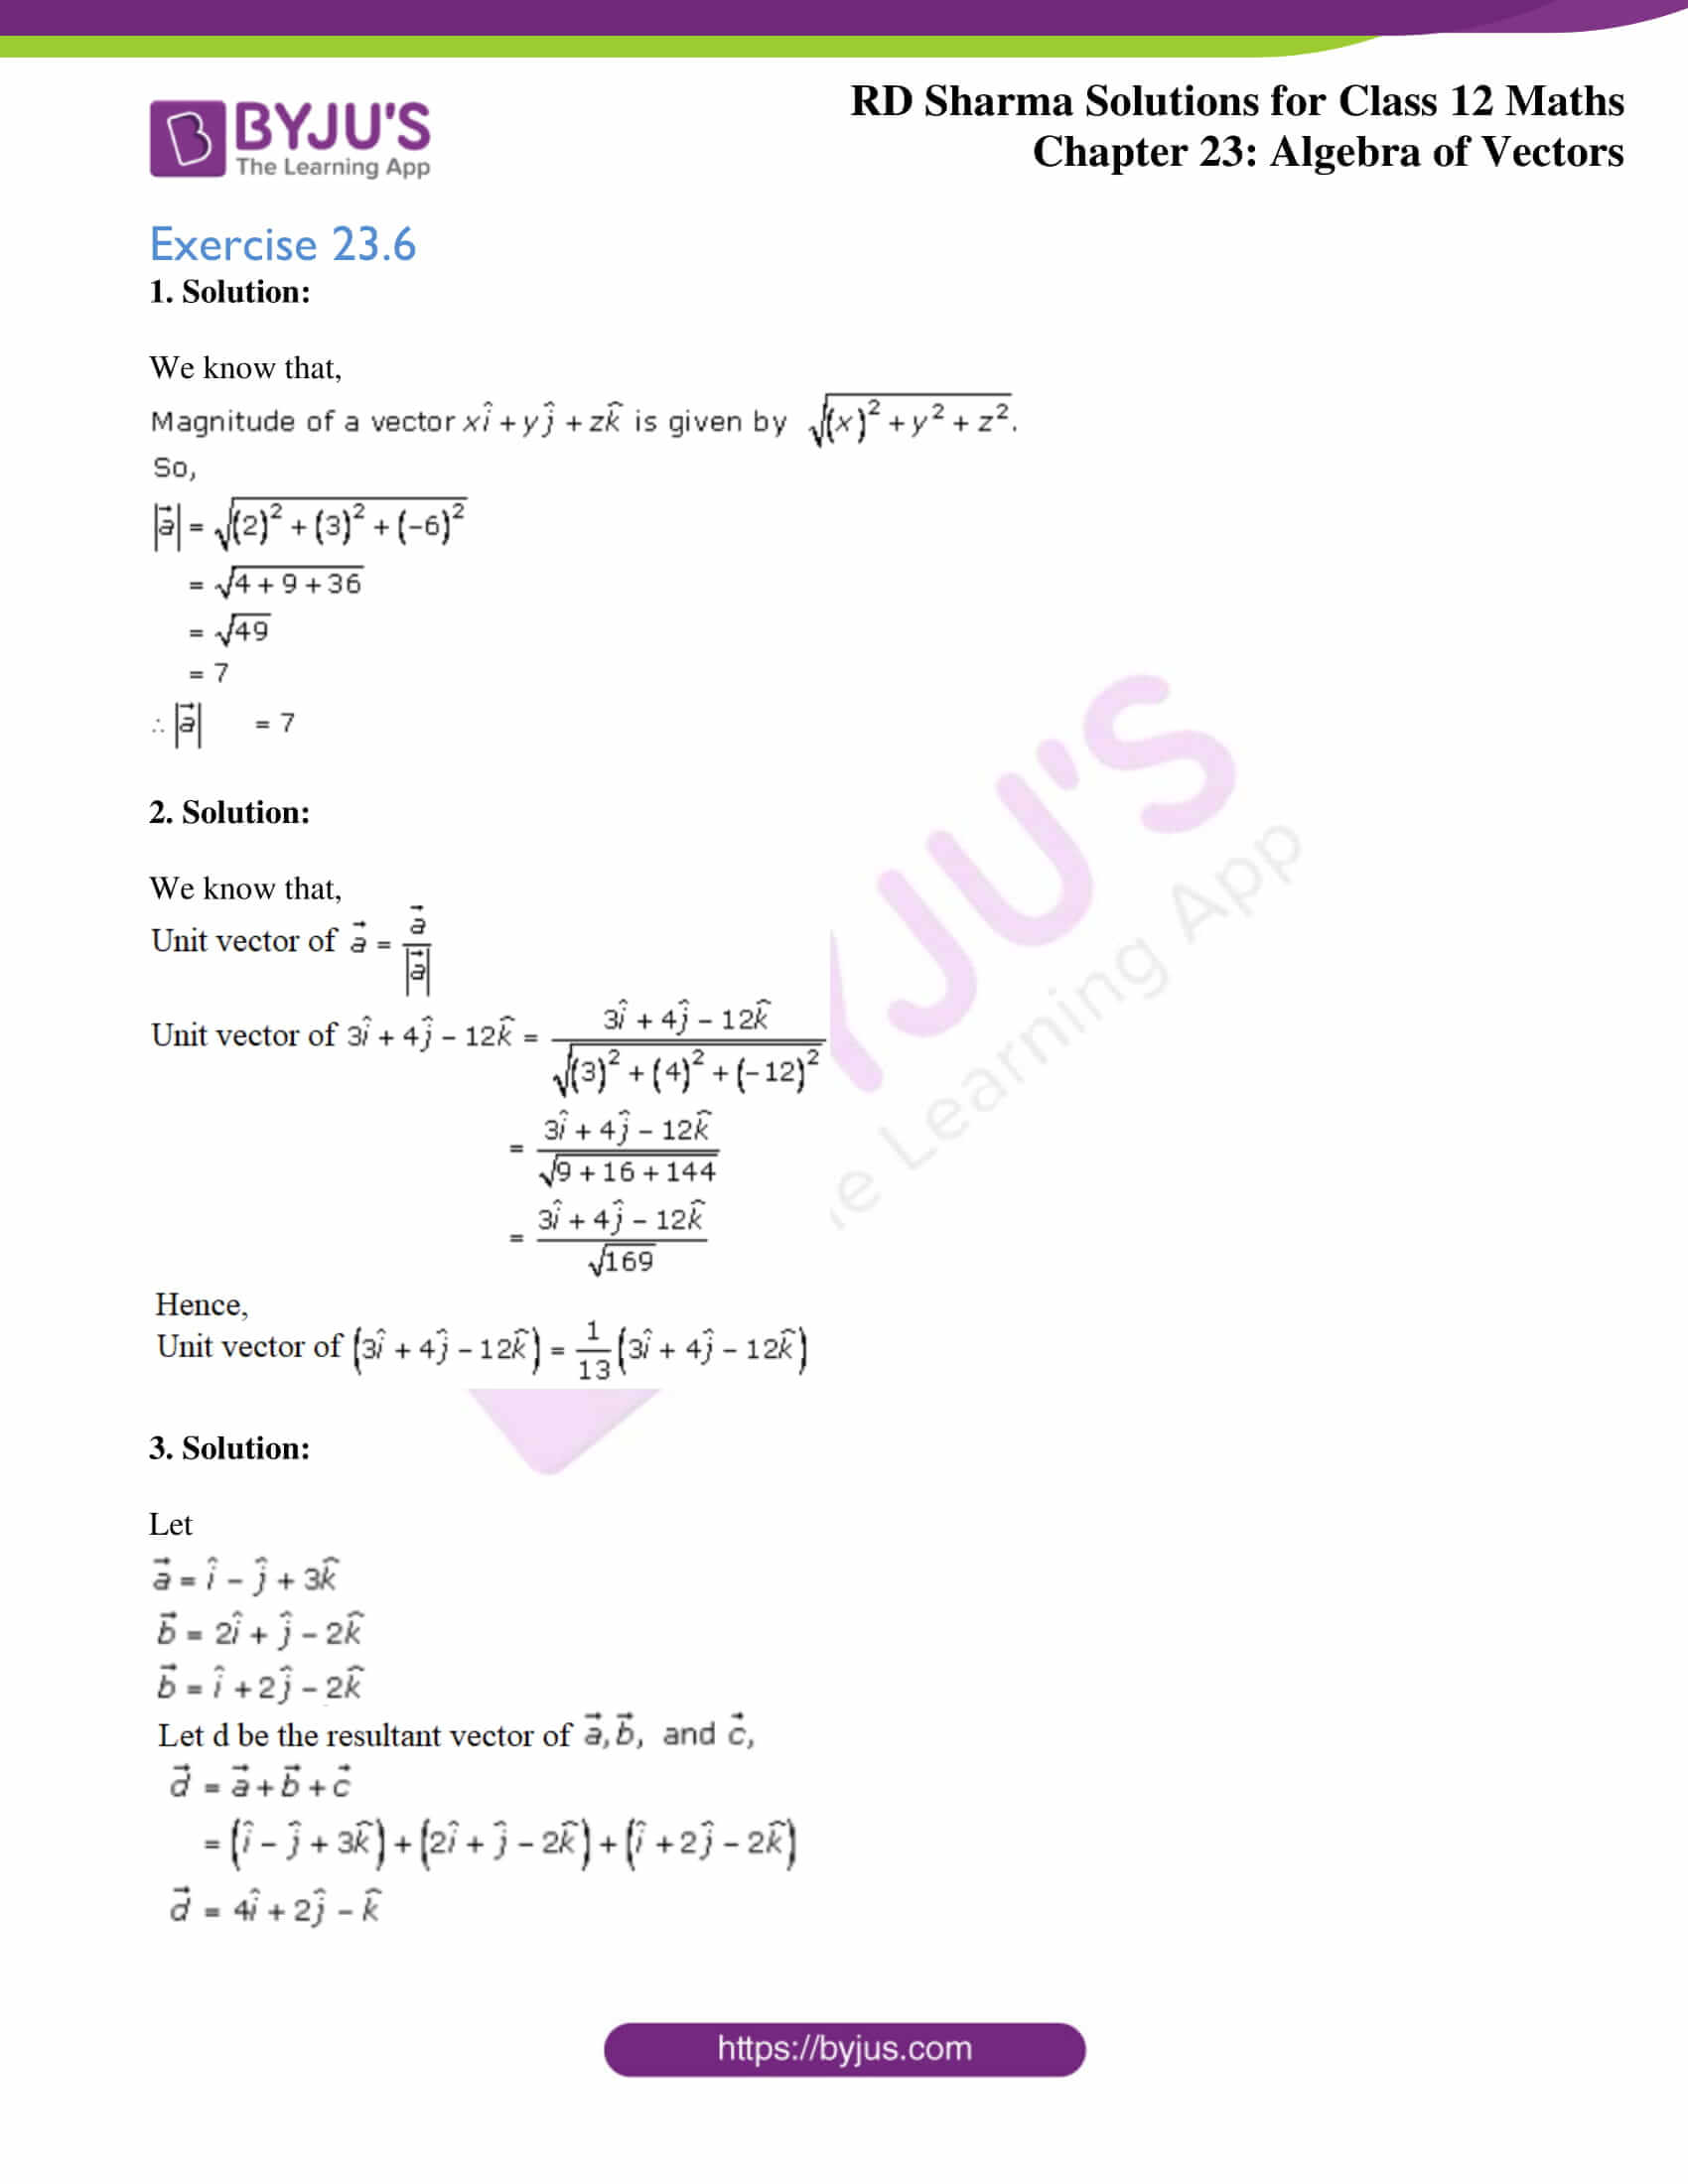 rd sharma class 12 solution for maths chapter 23 ex 6 1